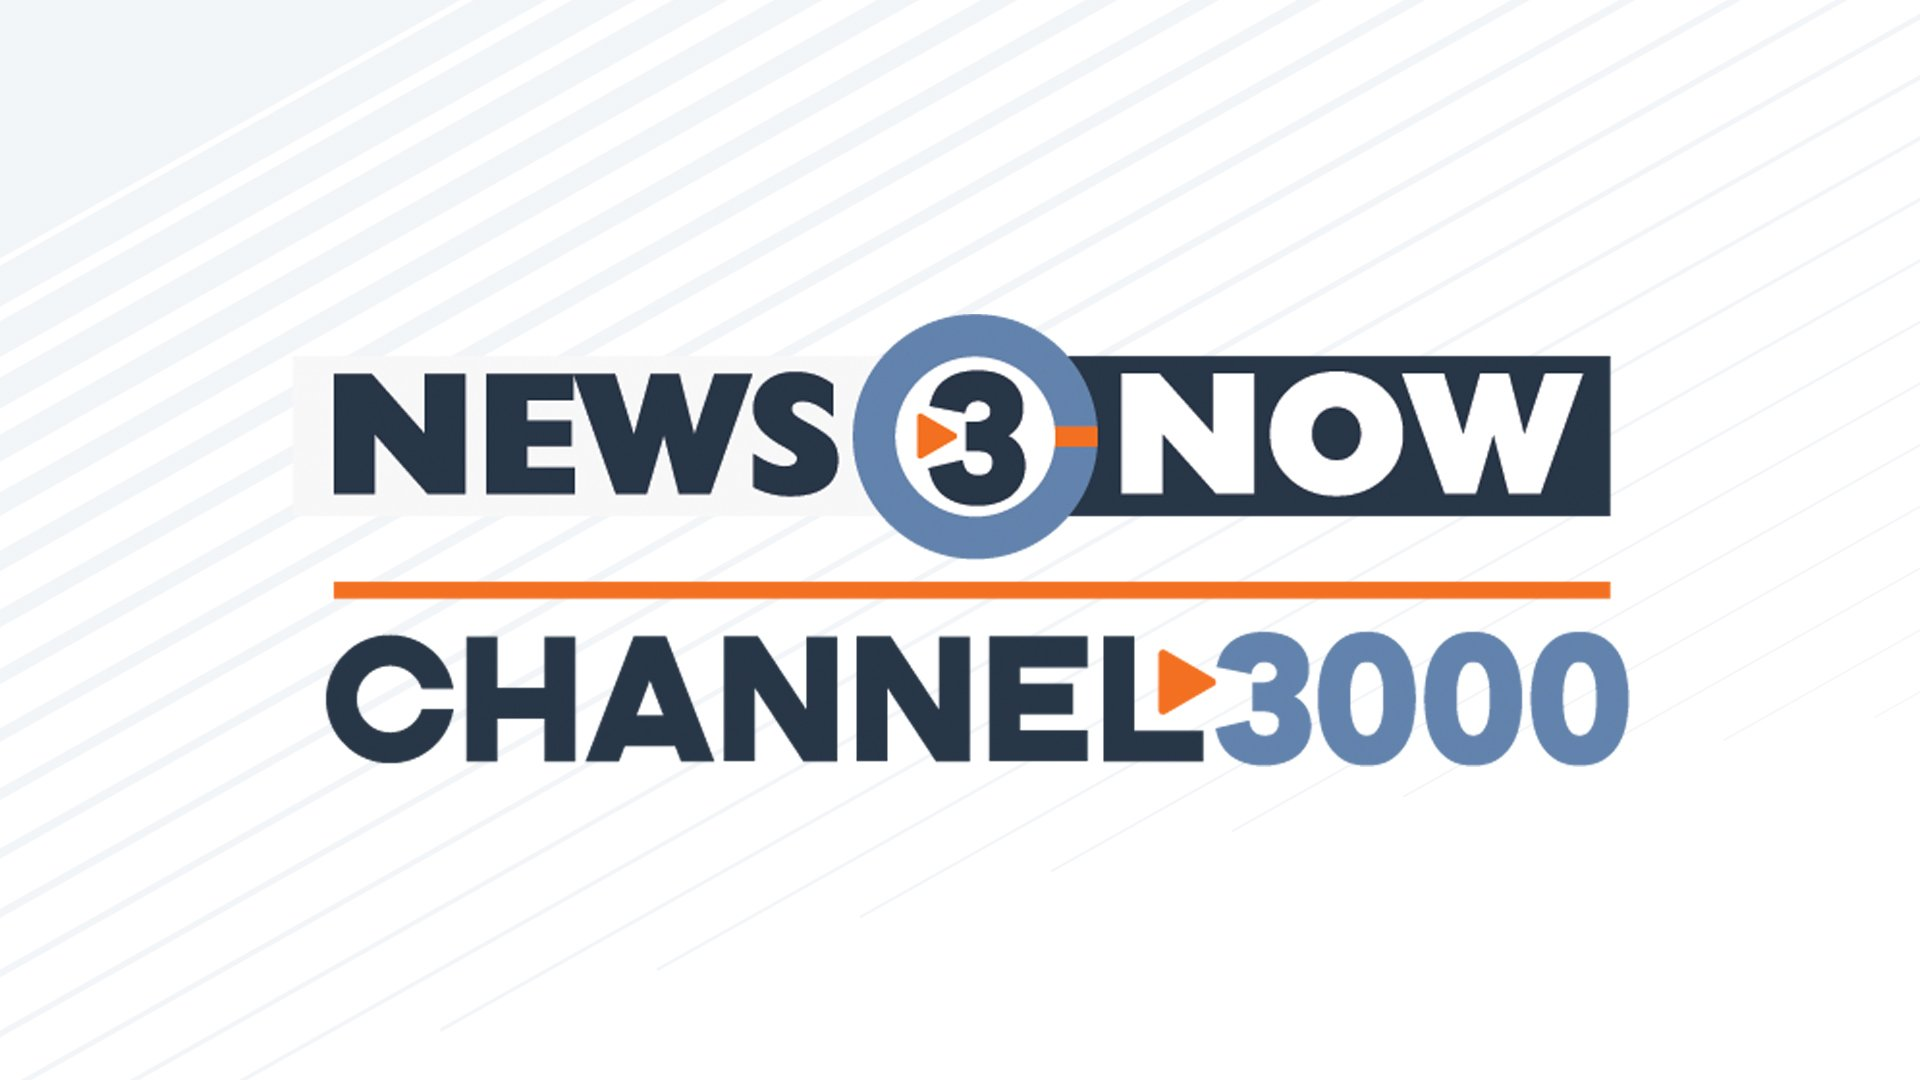 3 31 20 Big News 3 Now Channel 3000 Logos